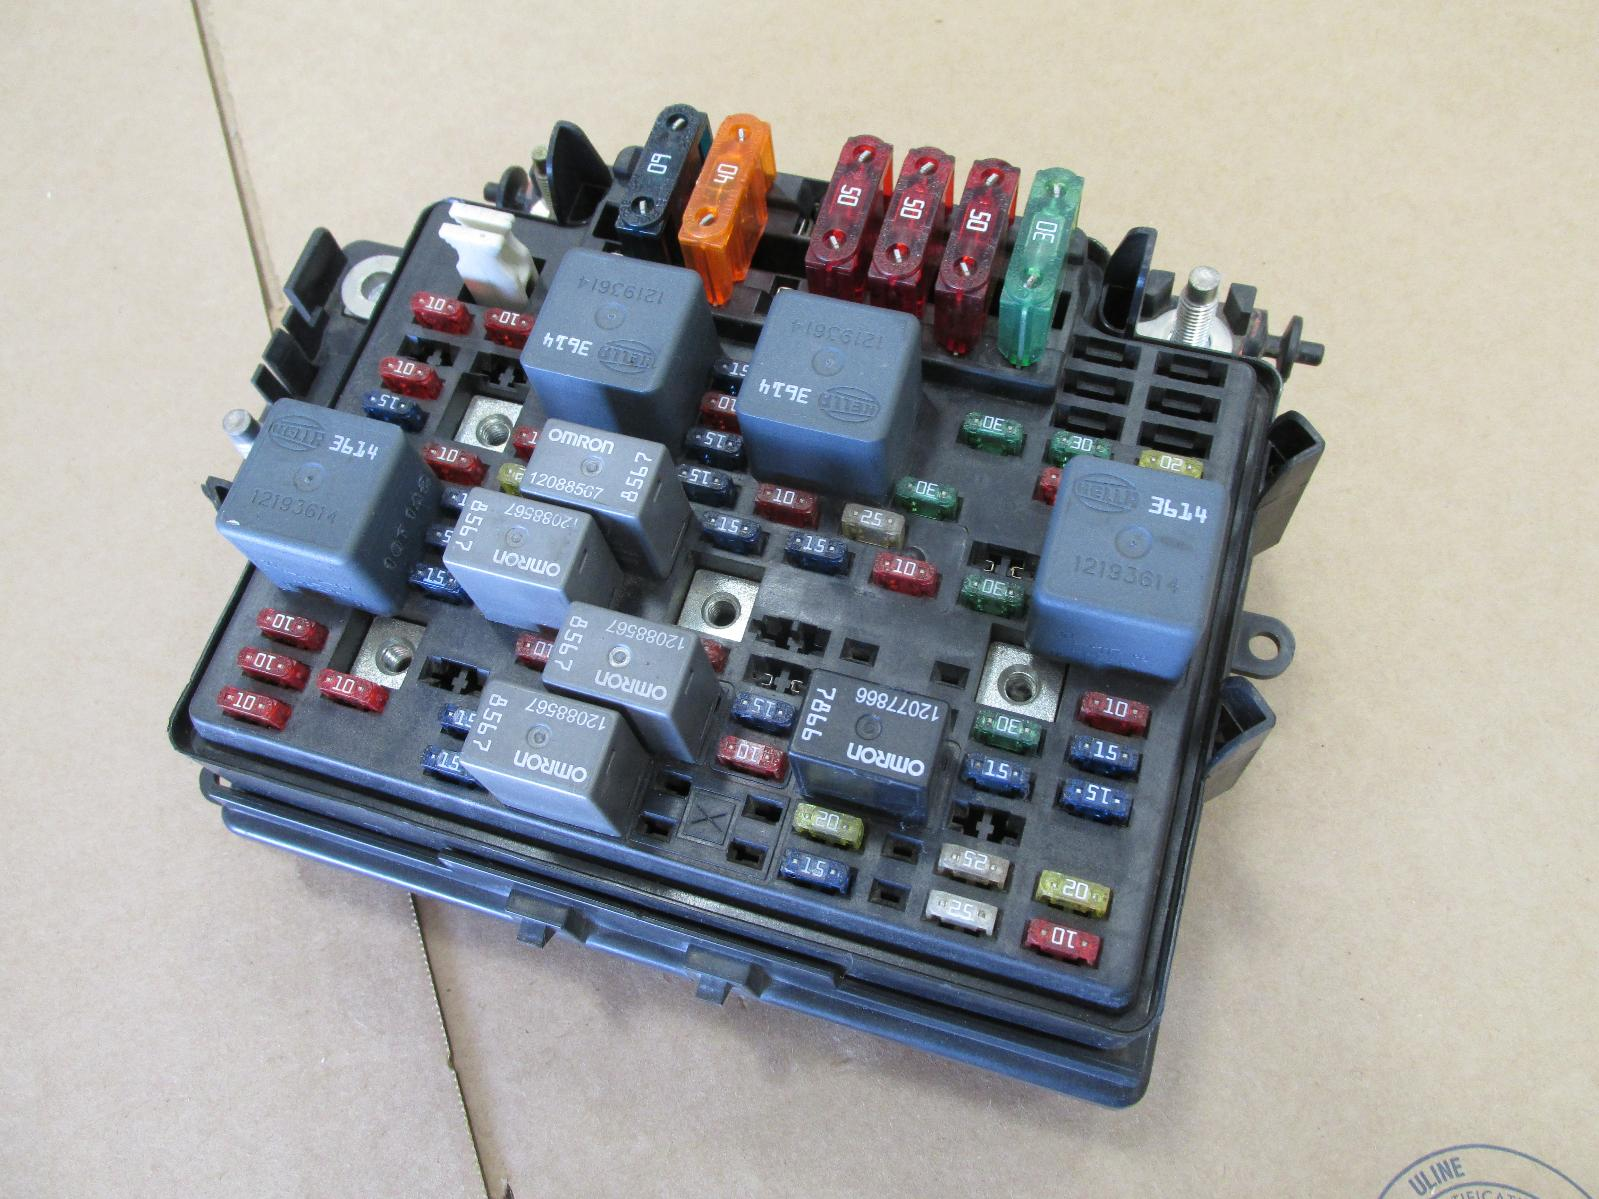 2001 Mazda Miata Fuse Locations Fuse Box Diagram Millenia